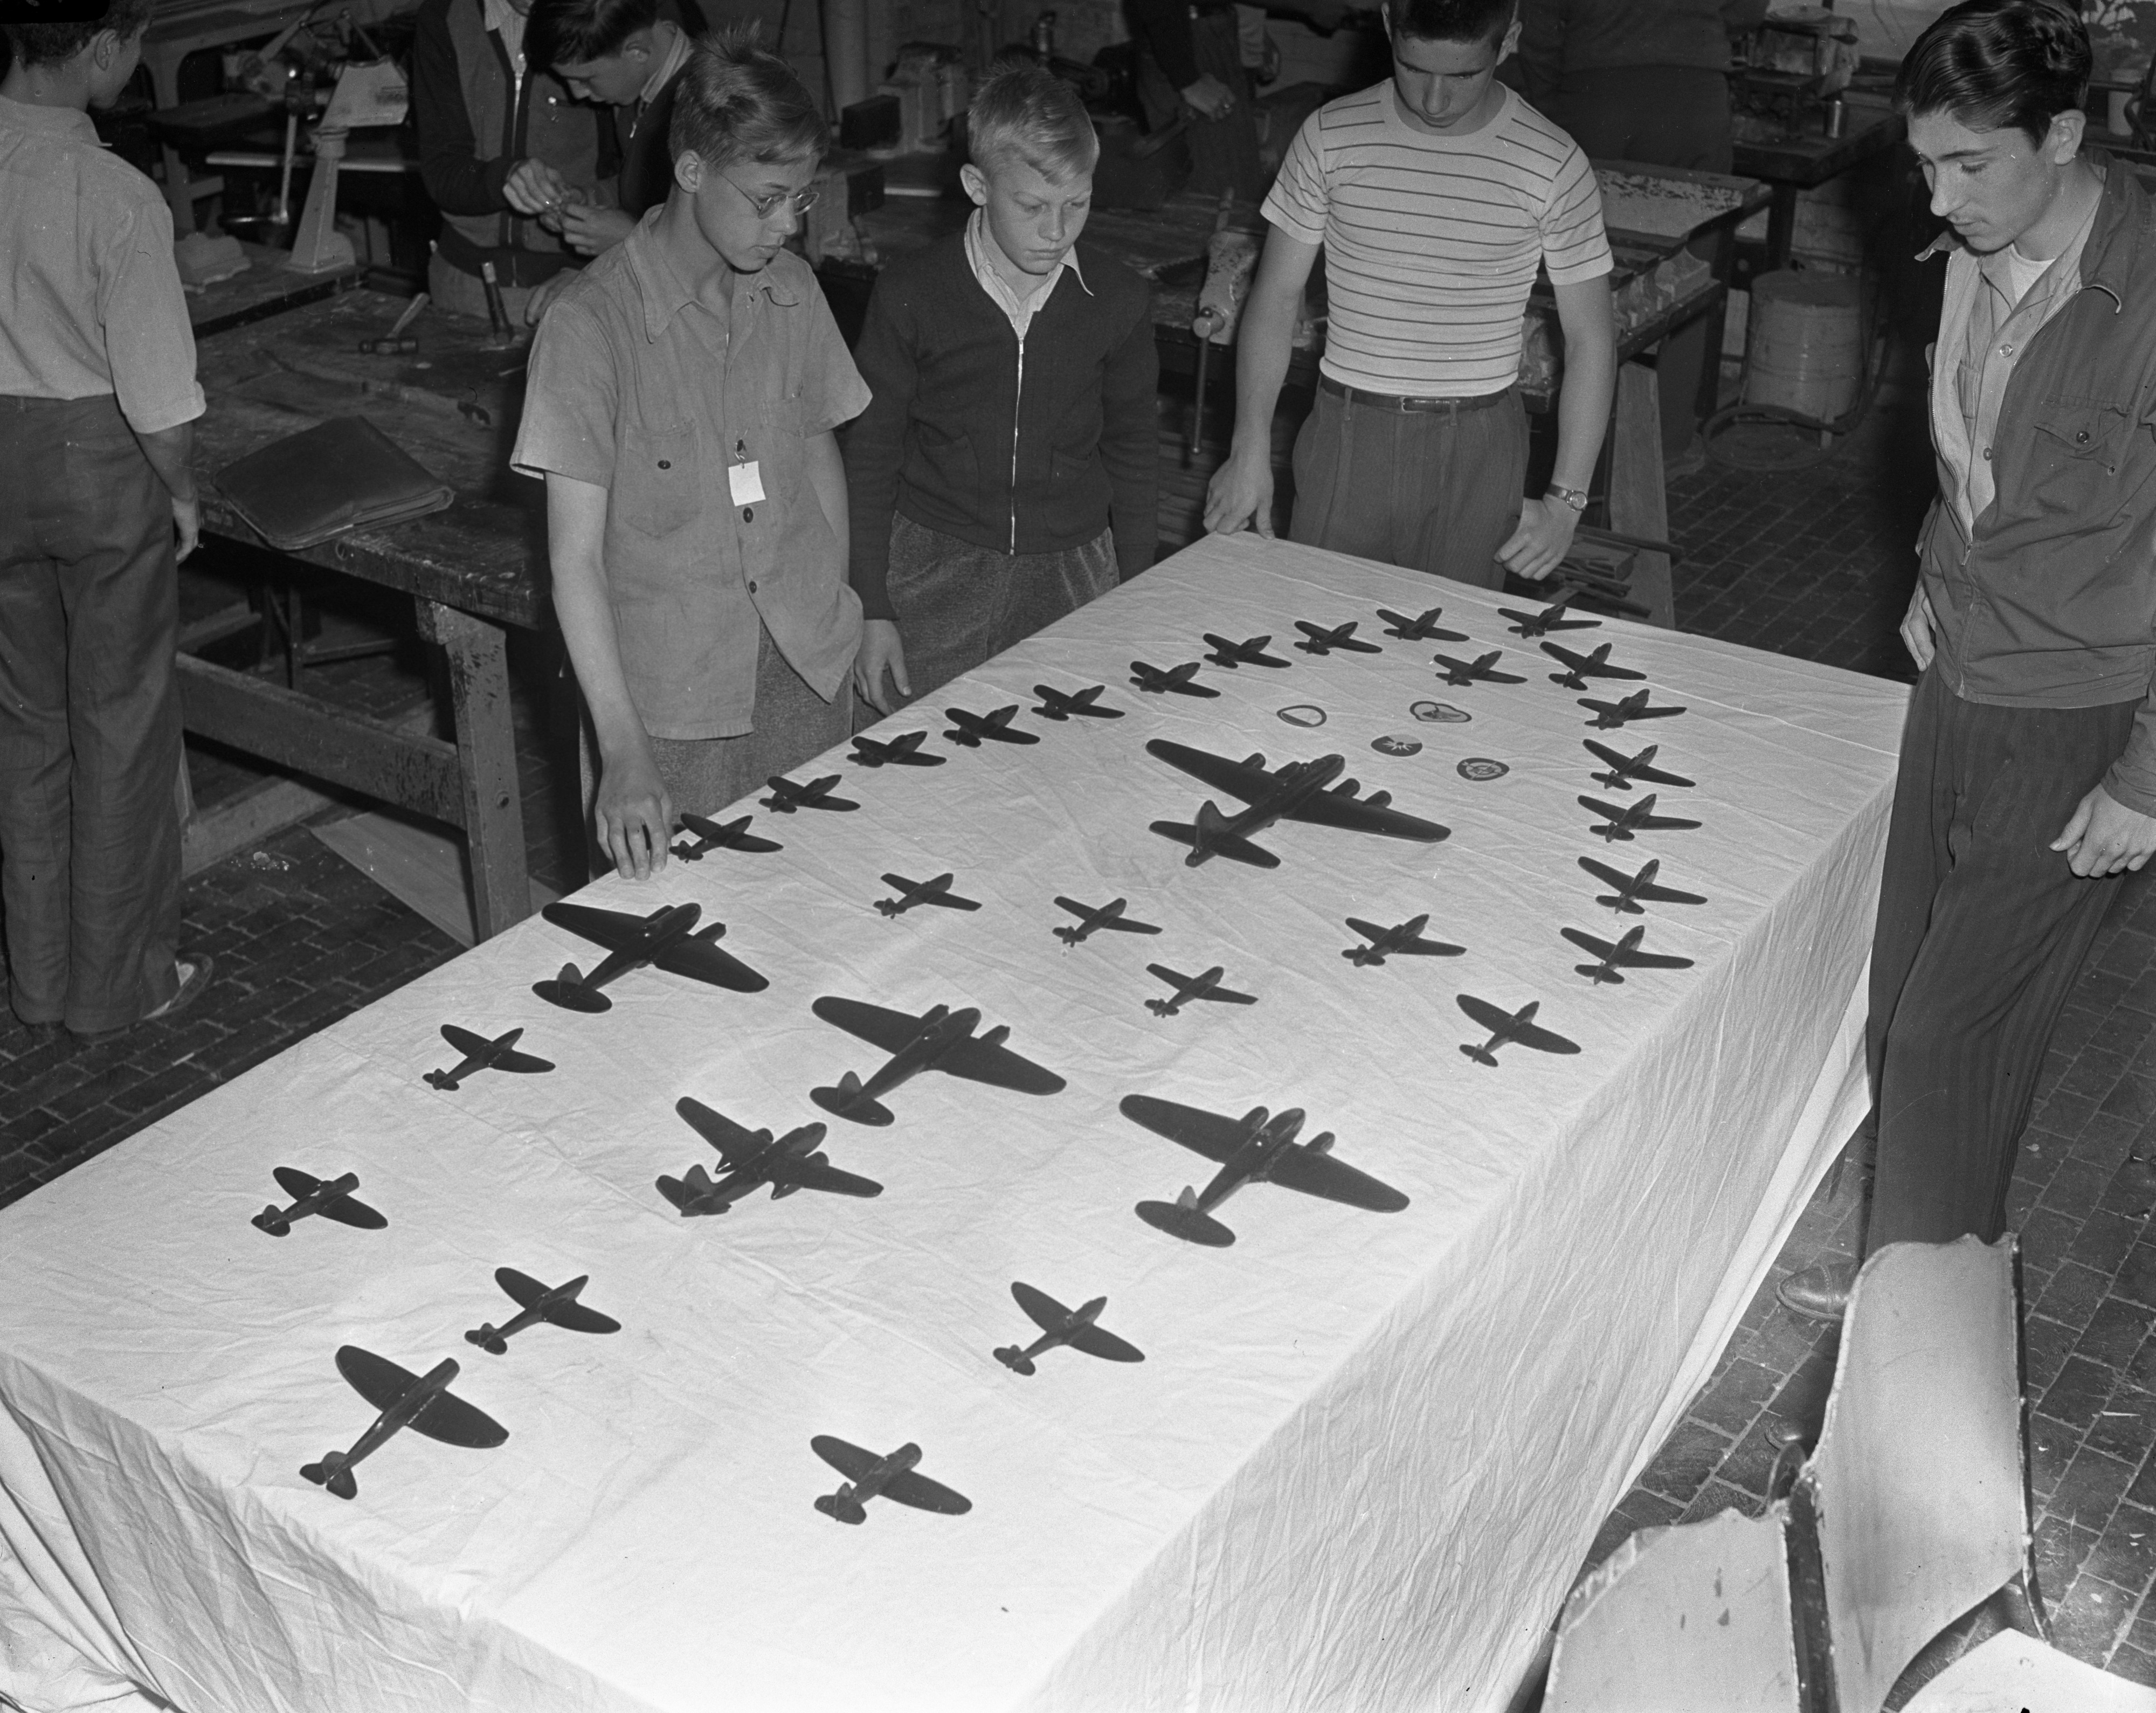 Boys at Tappan Junior High School with model planes they built, May 1942 image